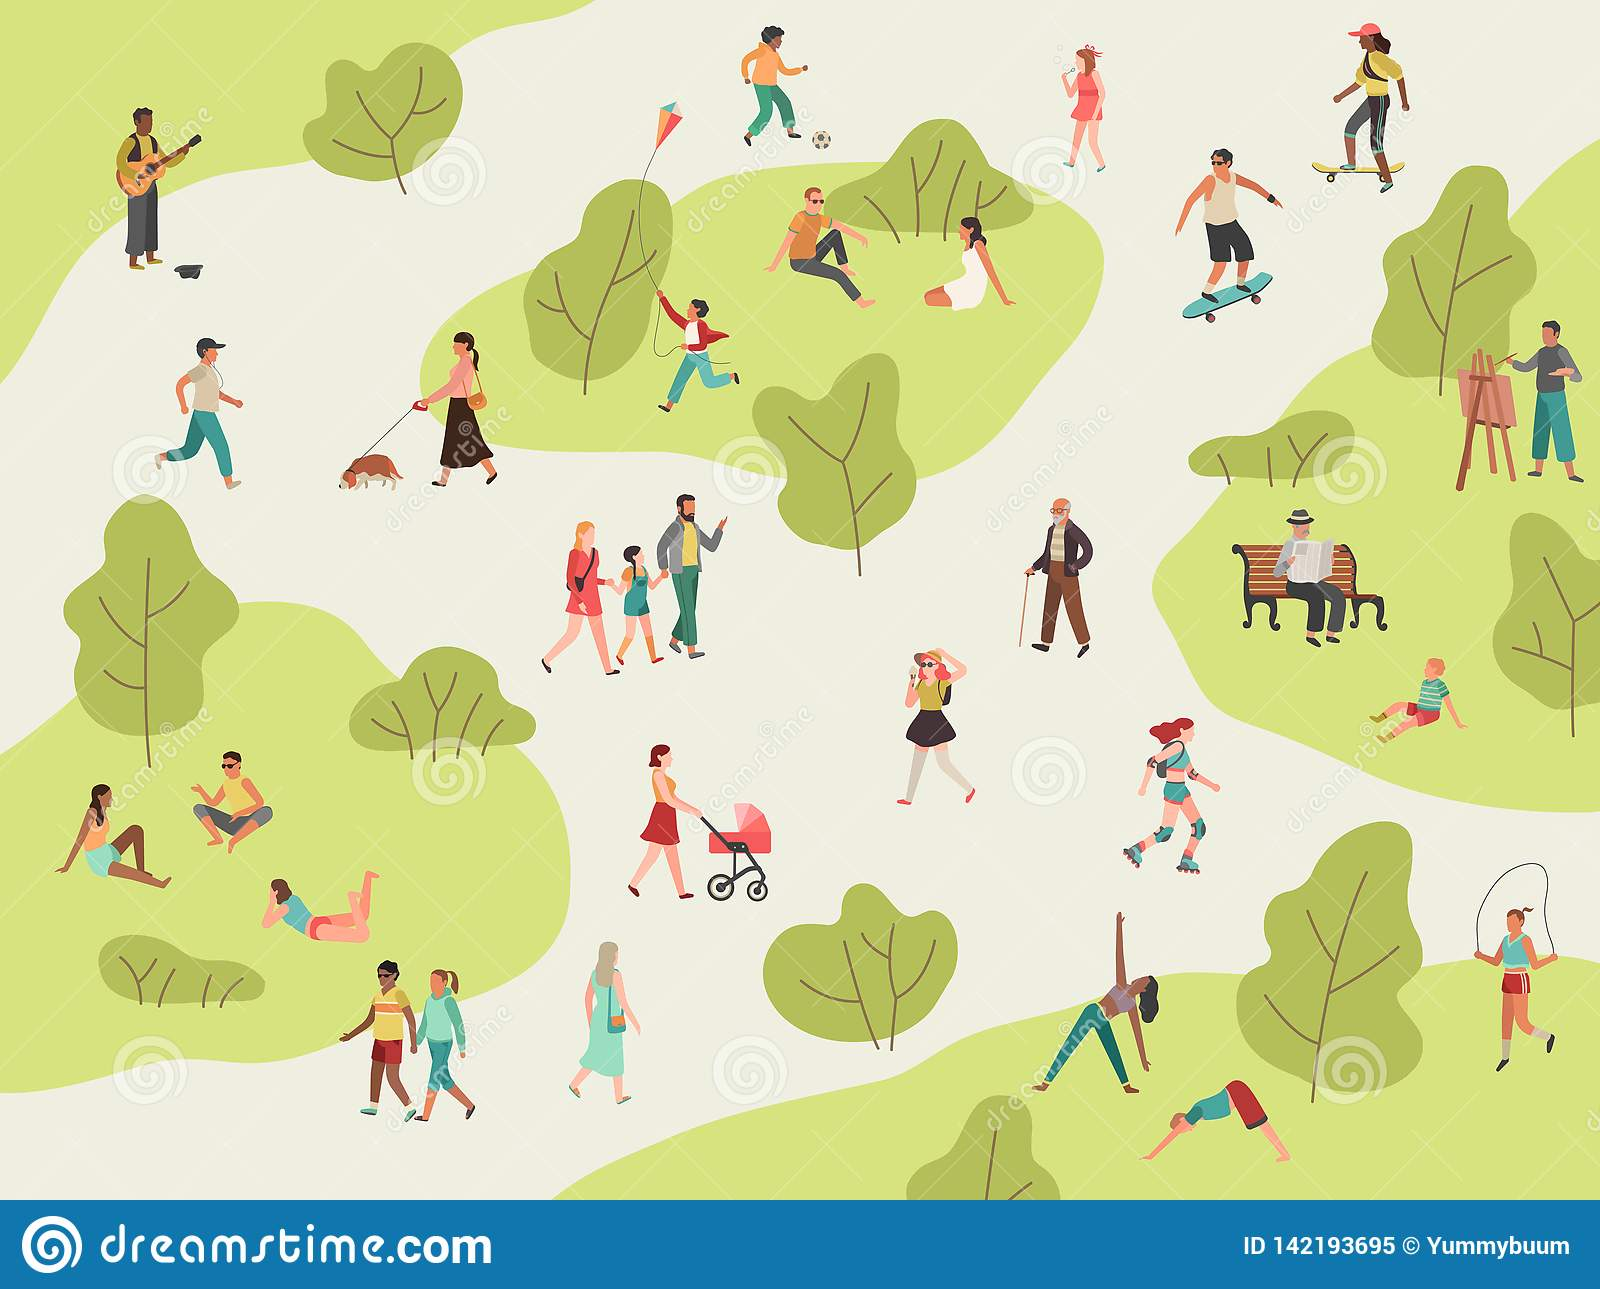 People park. Active walk outdoors woman man girl children picnic sport talking community character leisure lunch in park